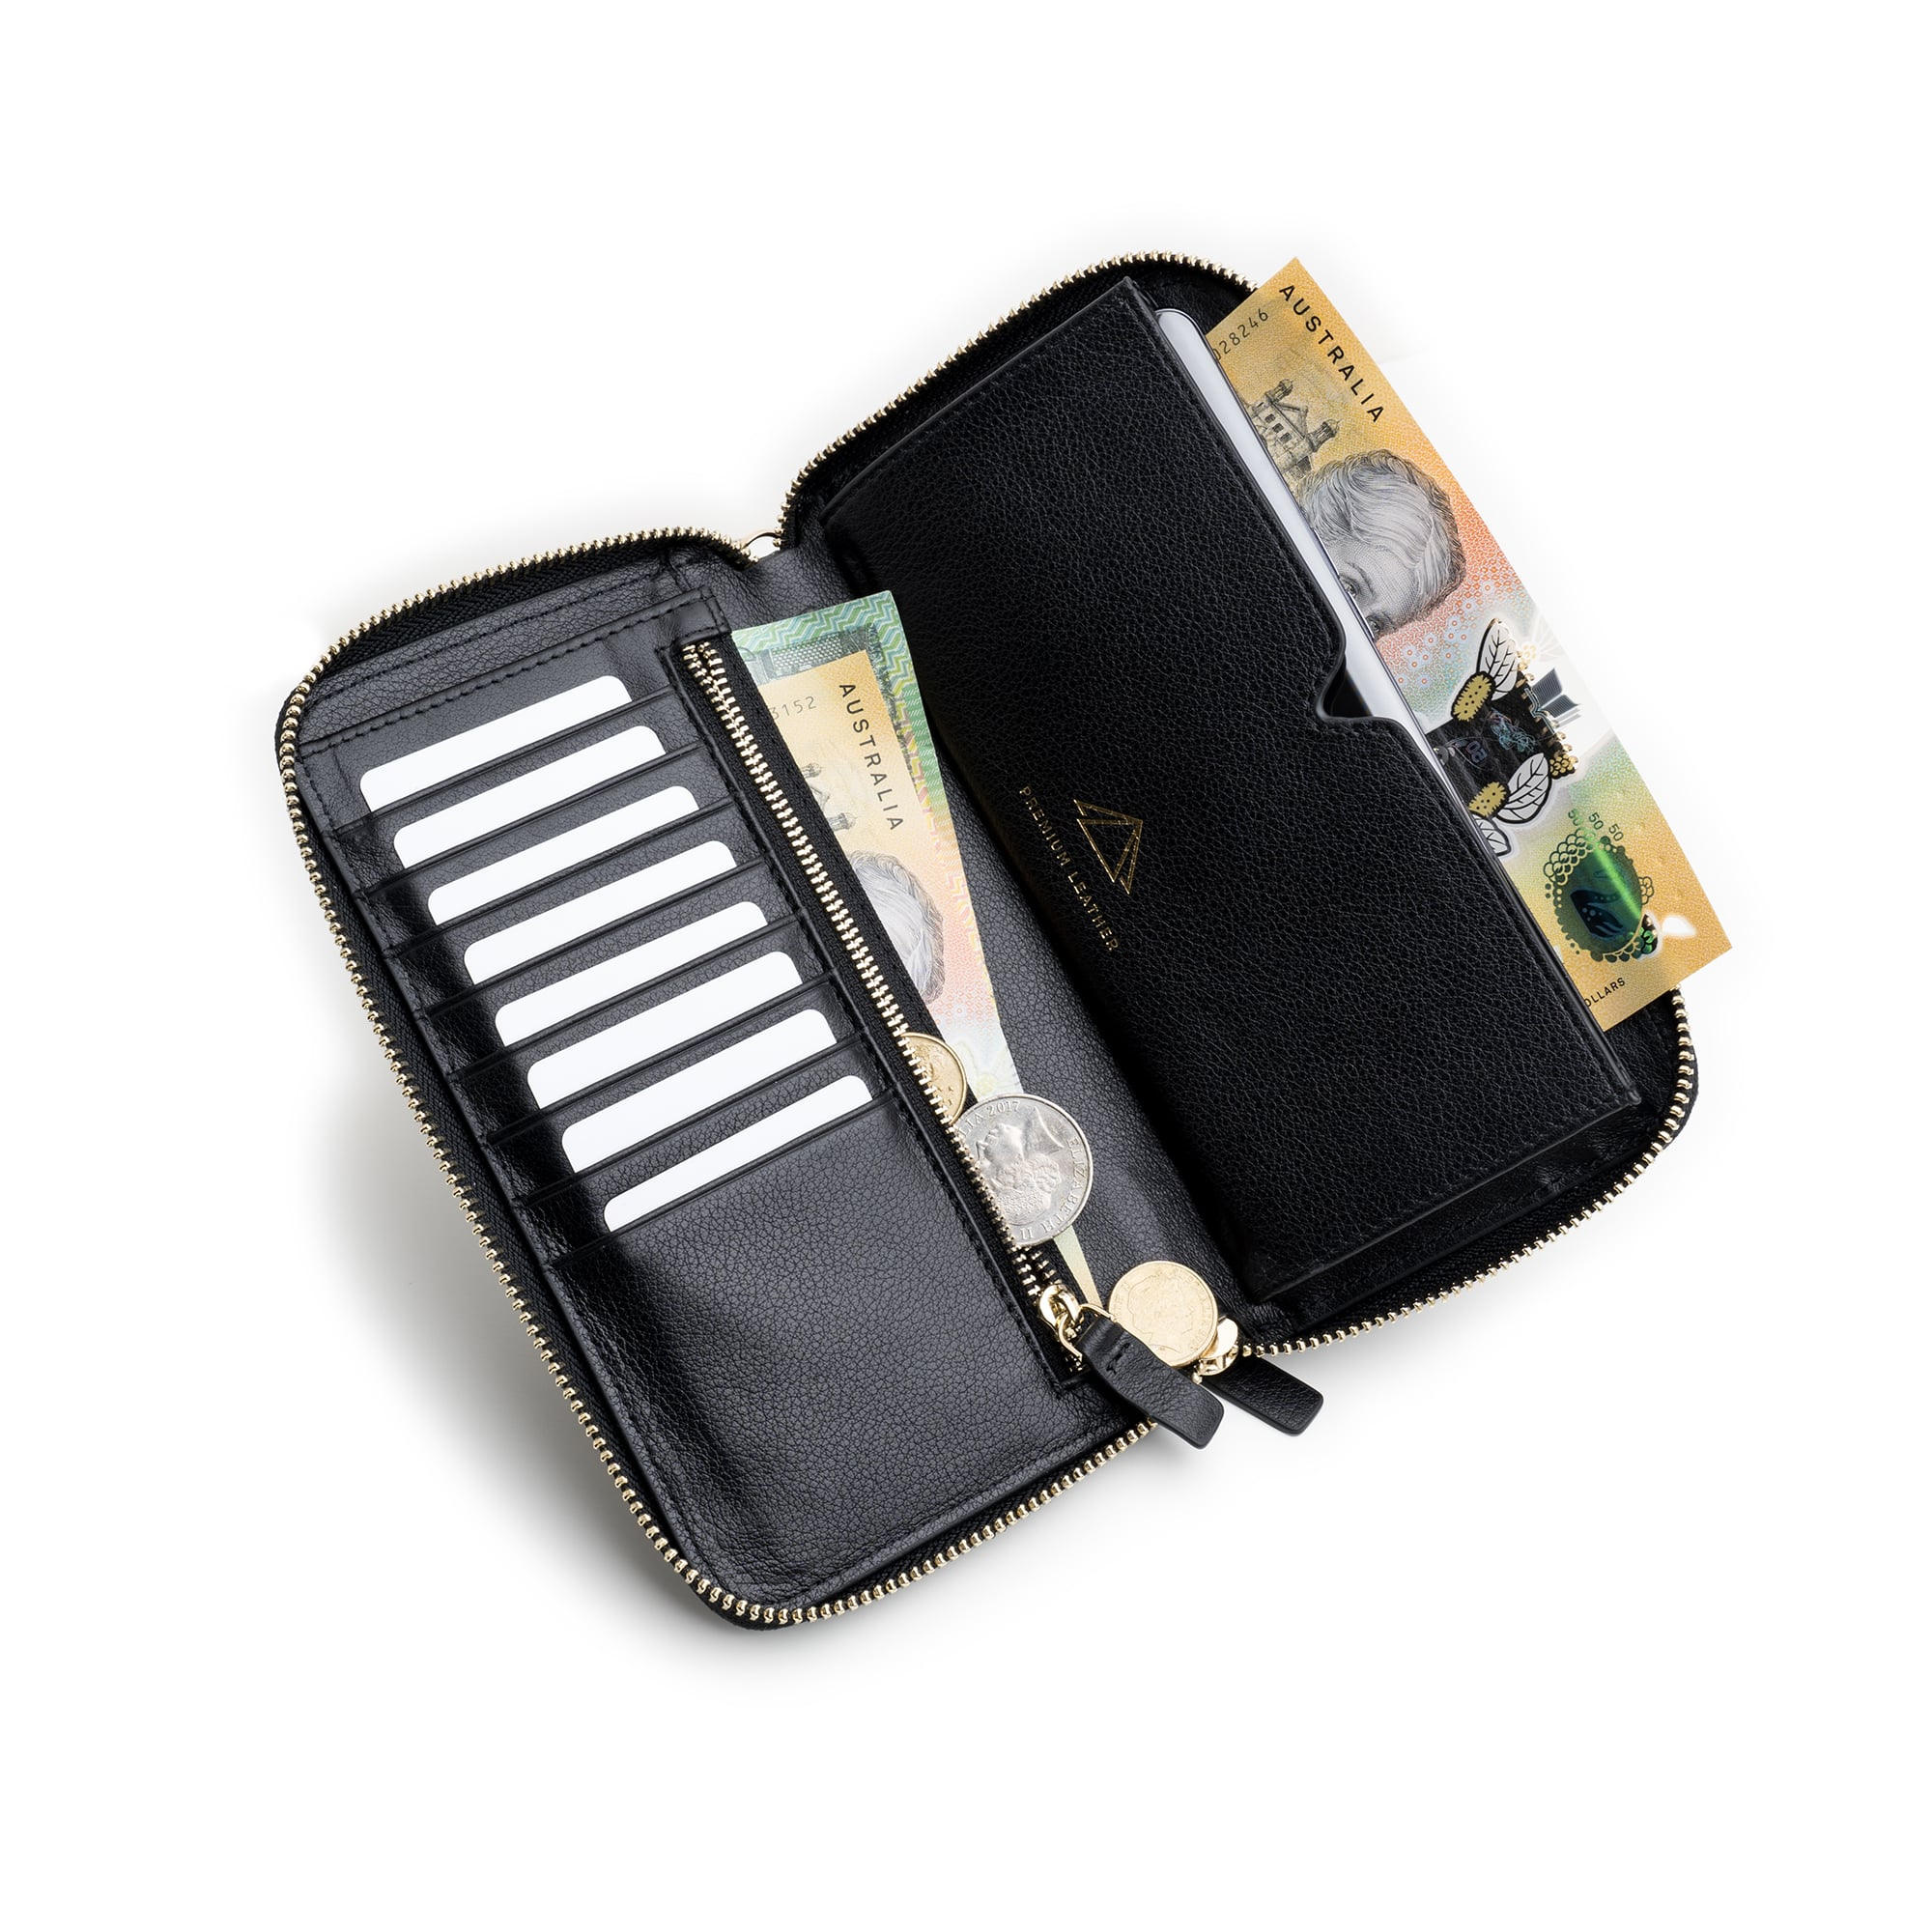 karakoram2 glorious travel wallet